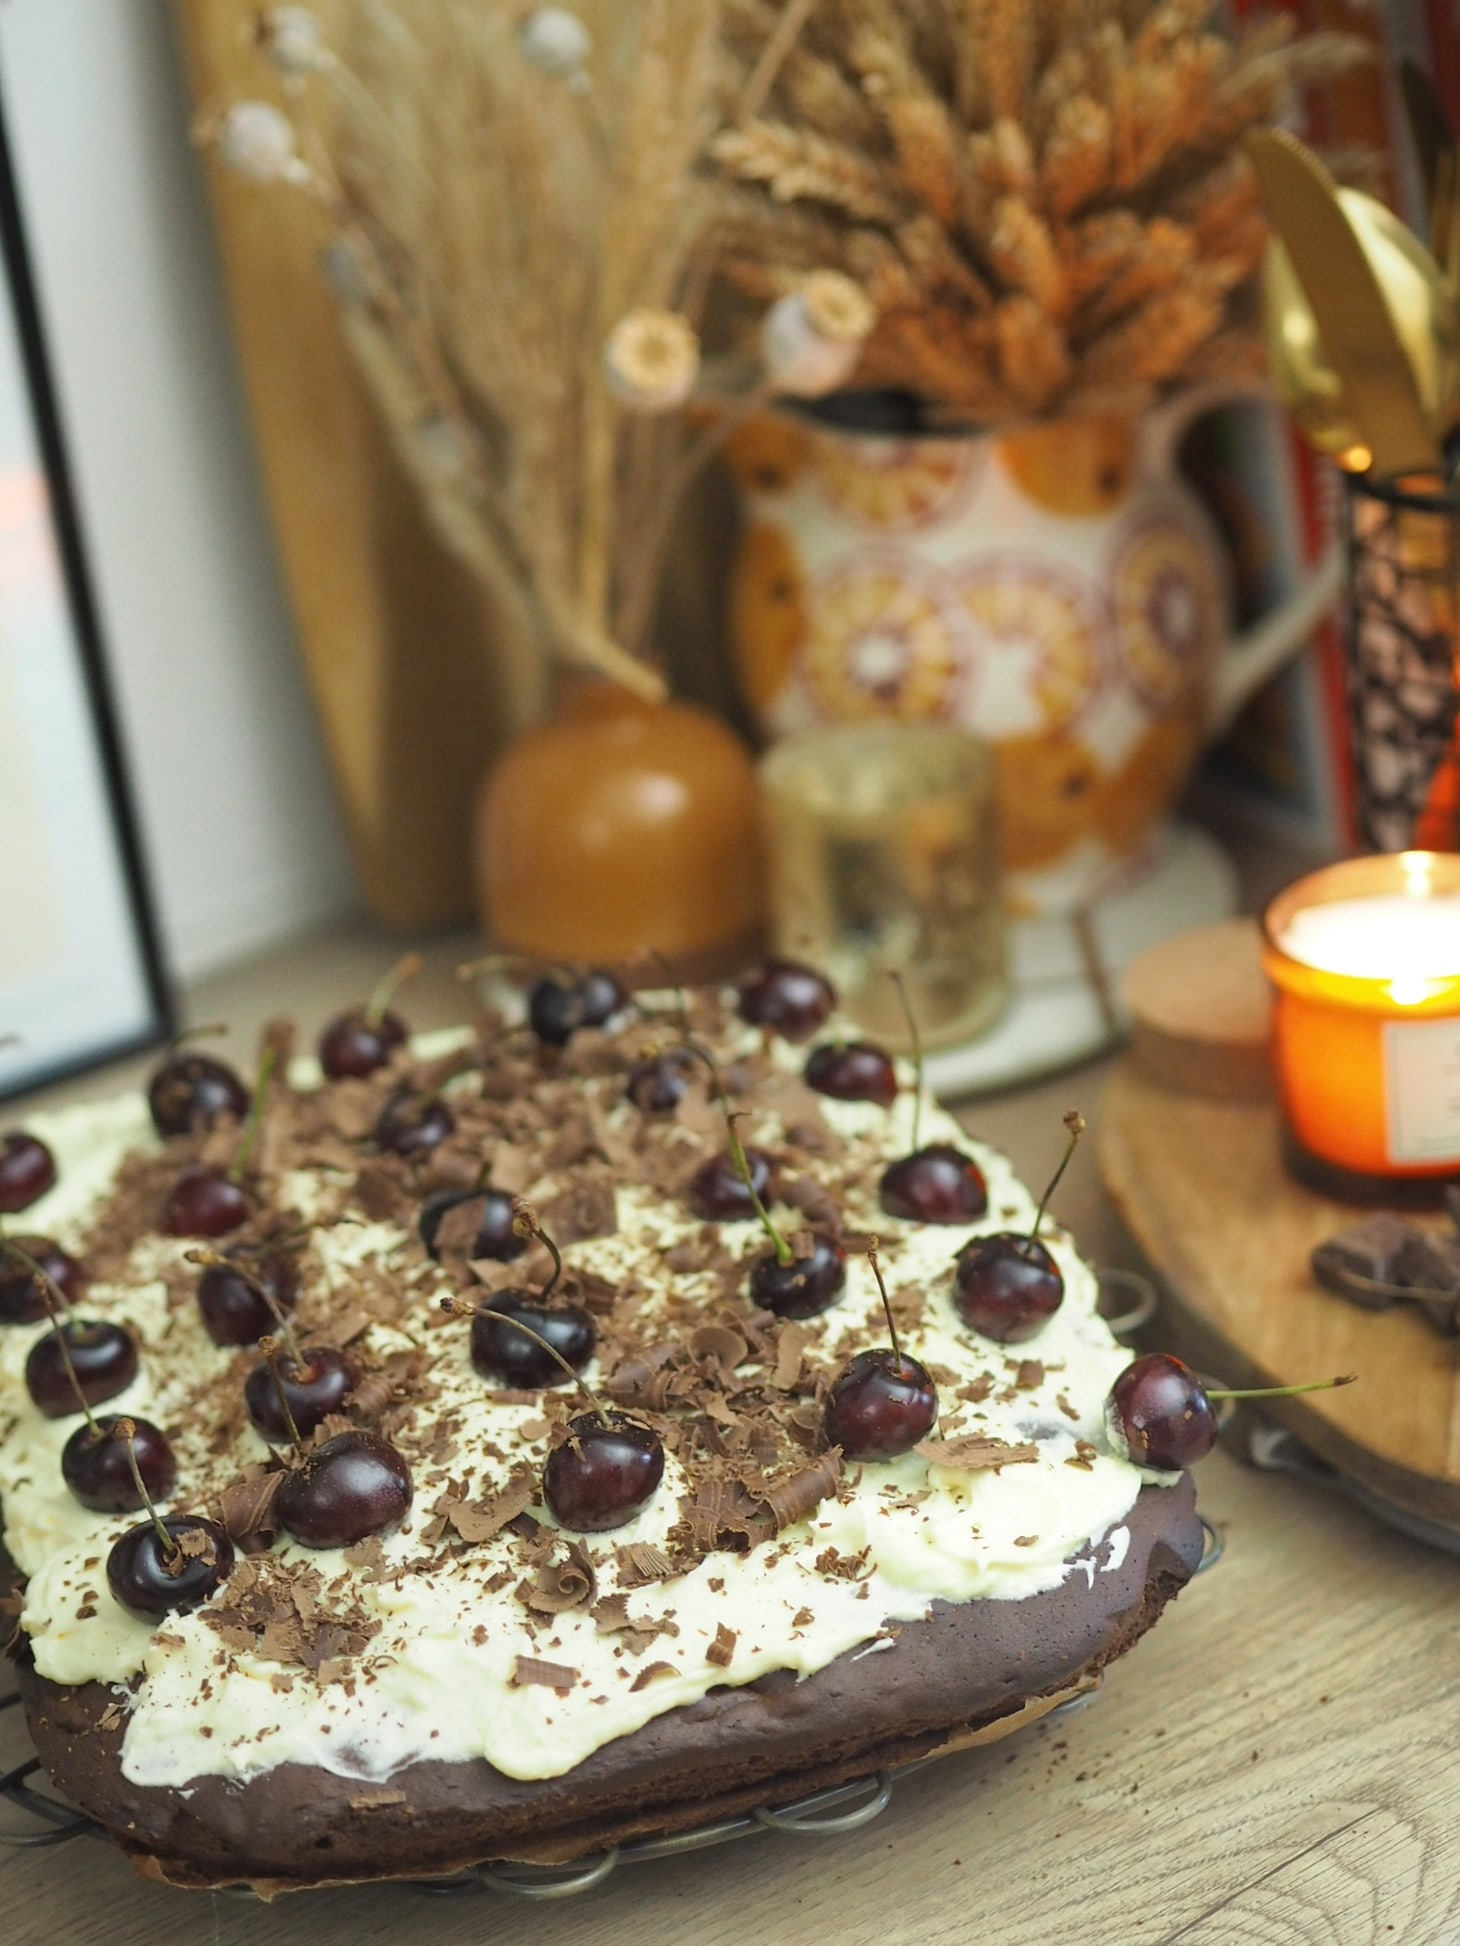 Simple recipe for baking a black forest cherry tray bake sponge. Easy recipe for beginners, perfect for winter and Christmas party desserts